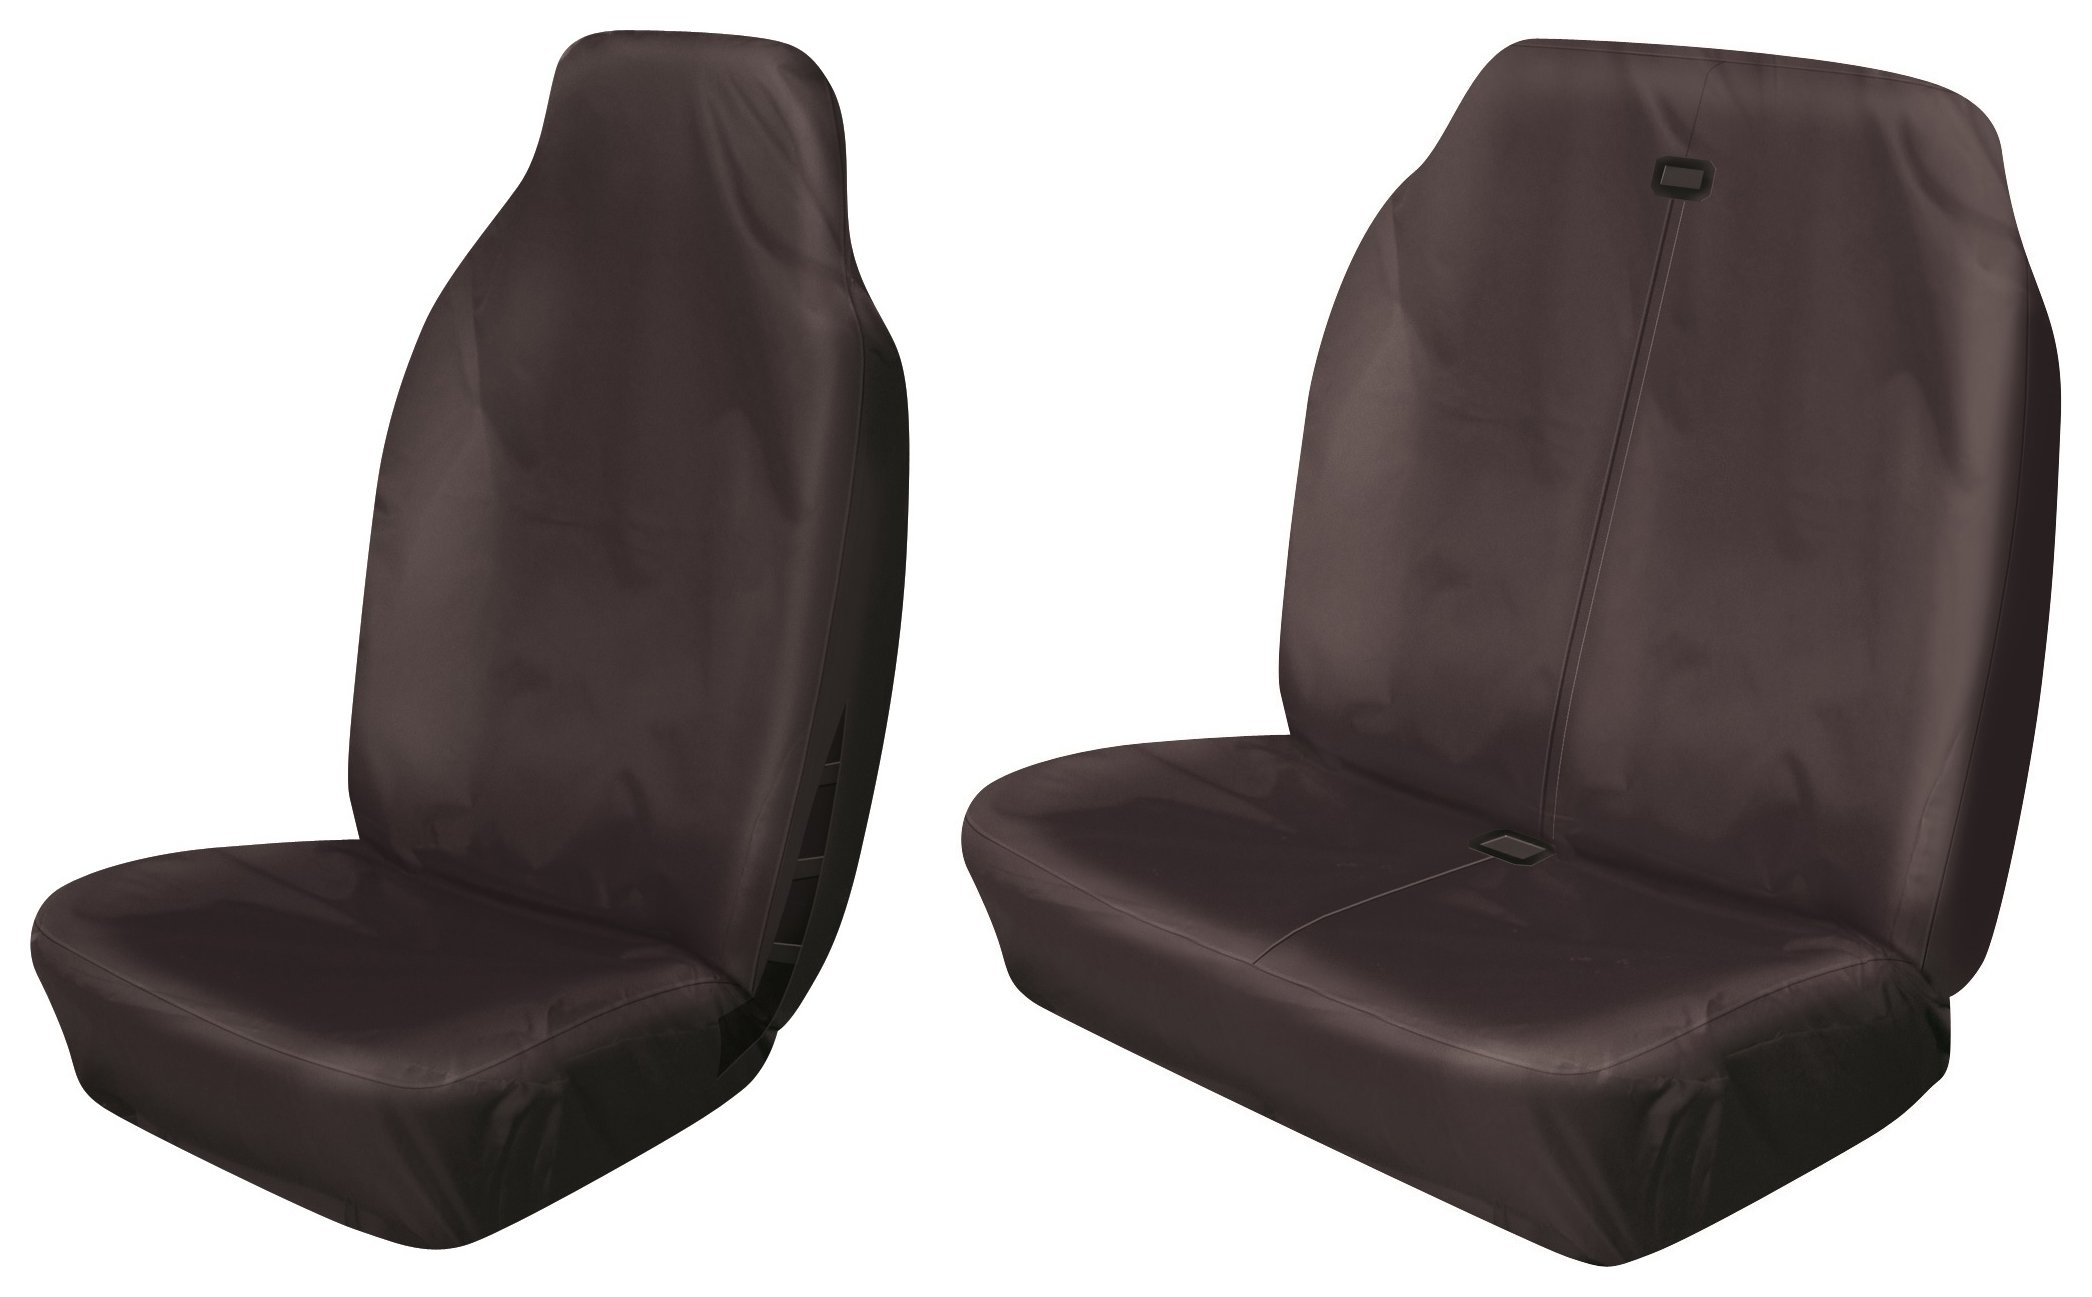 Cosmos Heavy Duty Commercial Seat Cover Set - Black